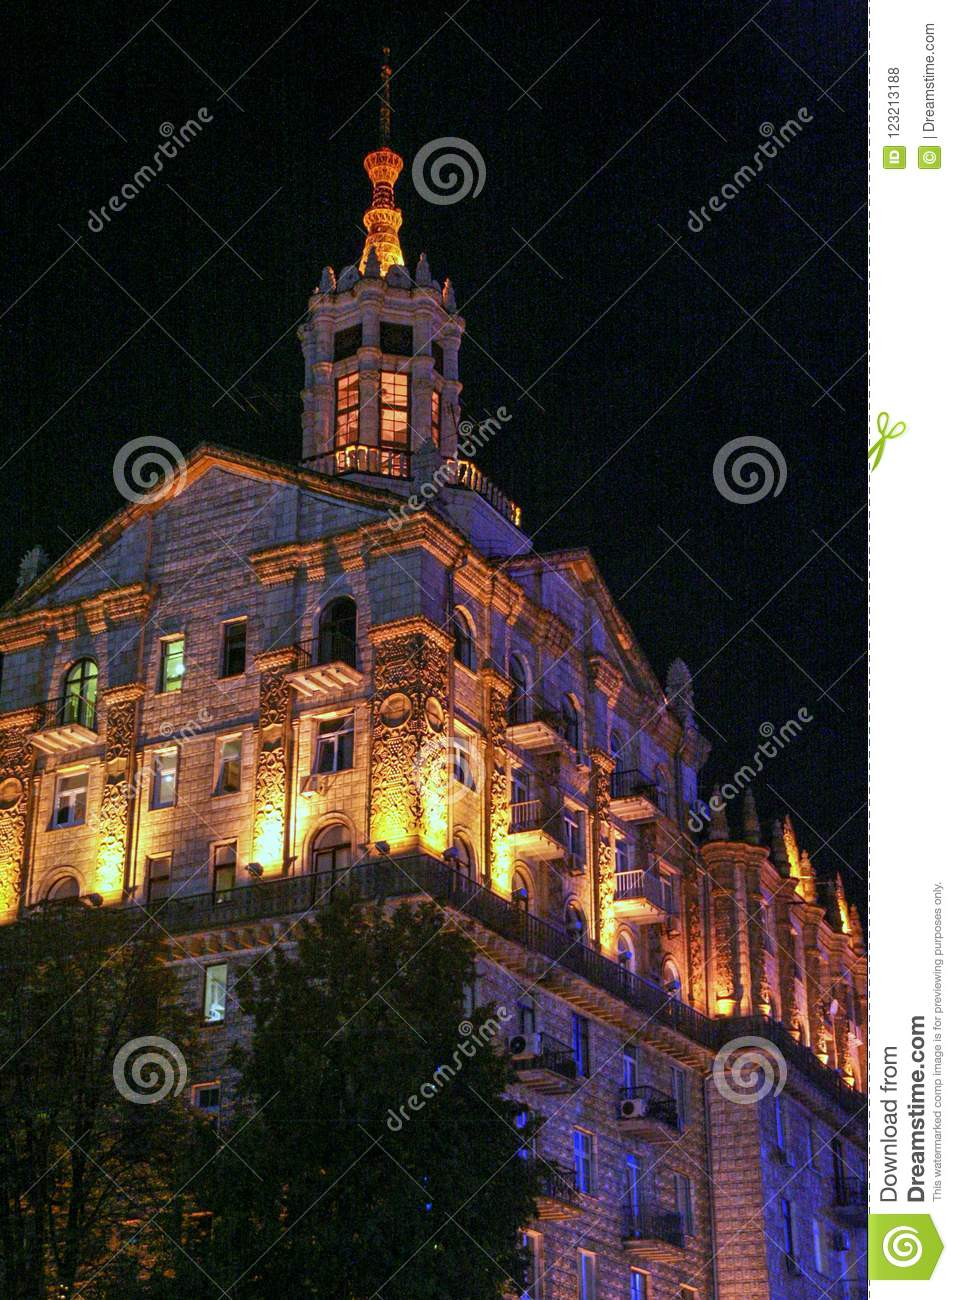 Façade of an old building in Kiev. Architecture of modern Ukraine.